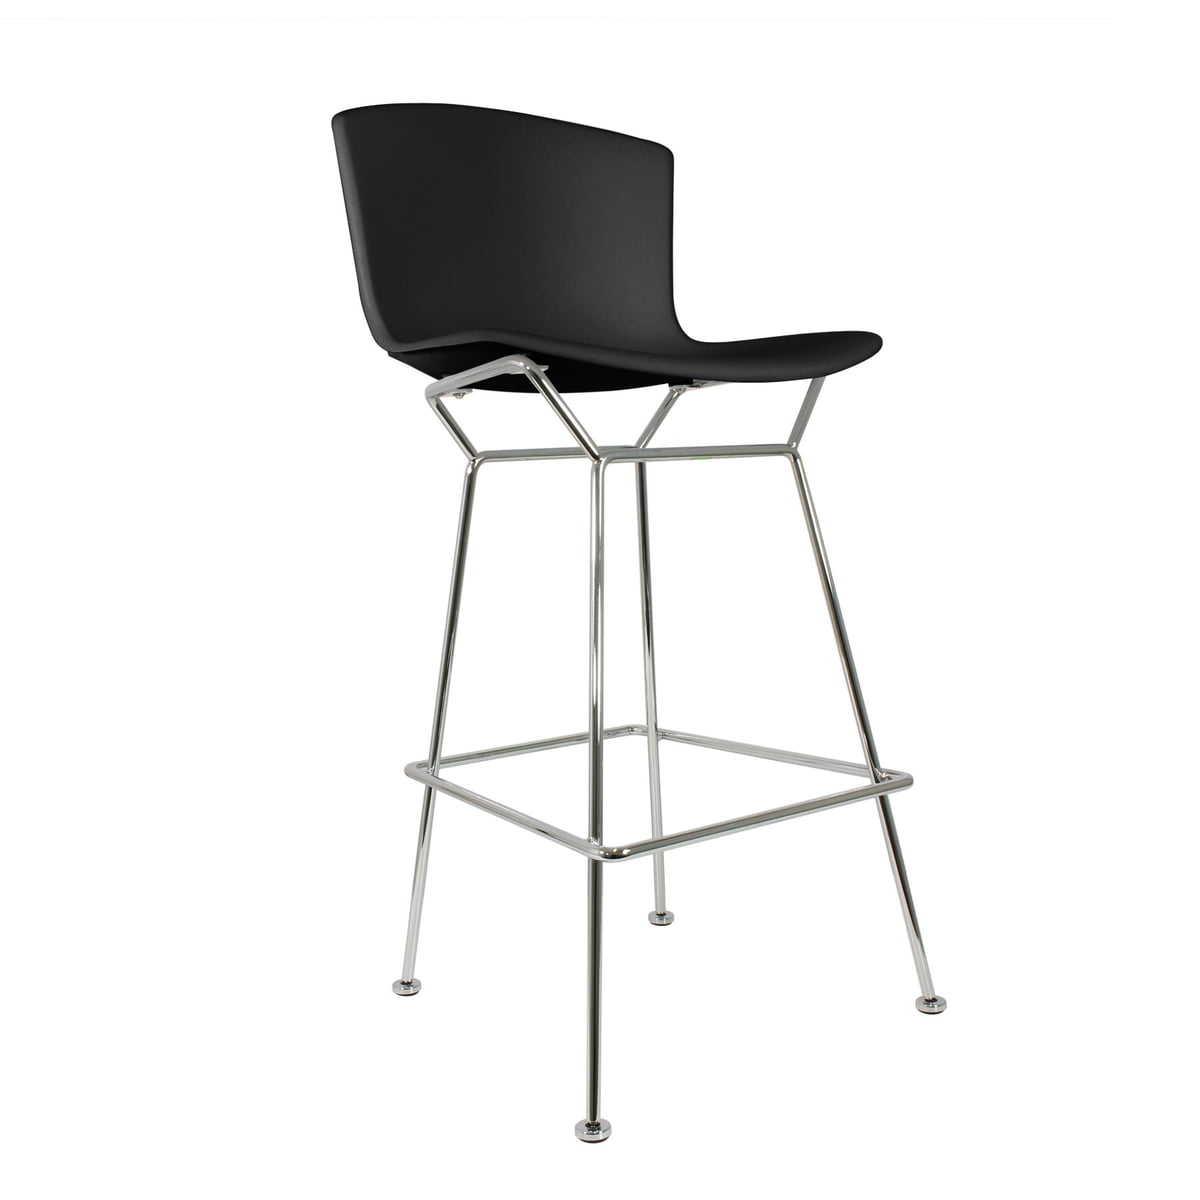 Knoll Bertoia Plastic Bar Stool blackchrome plated